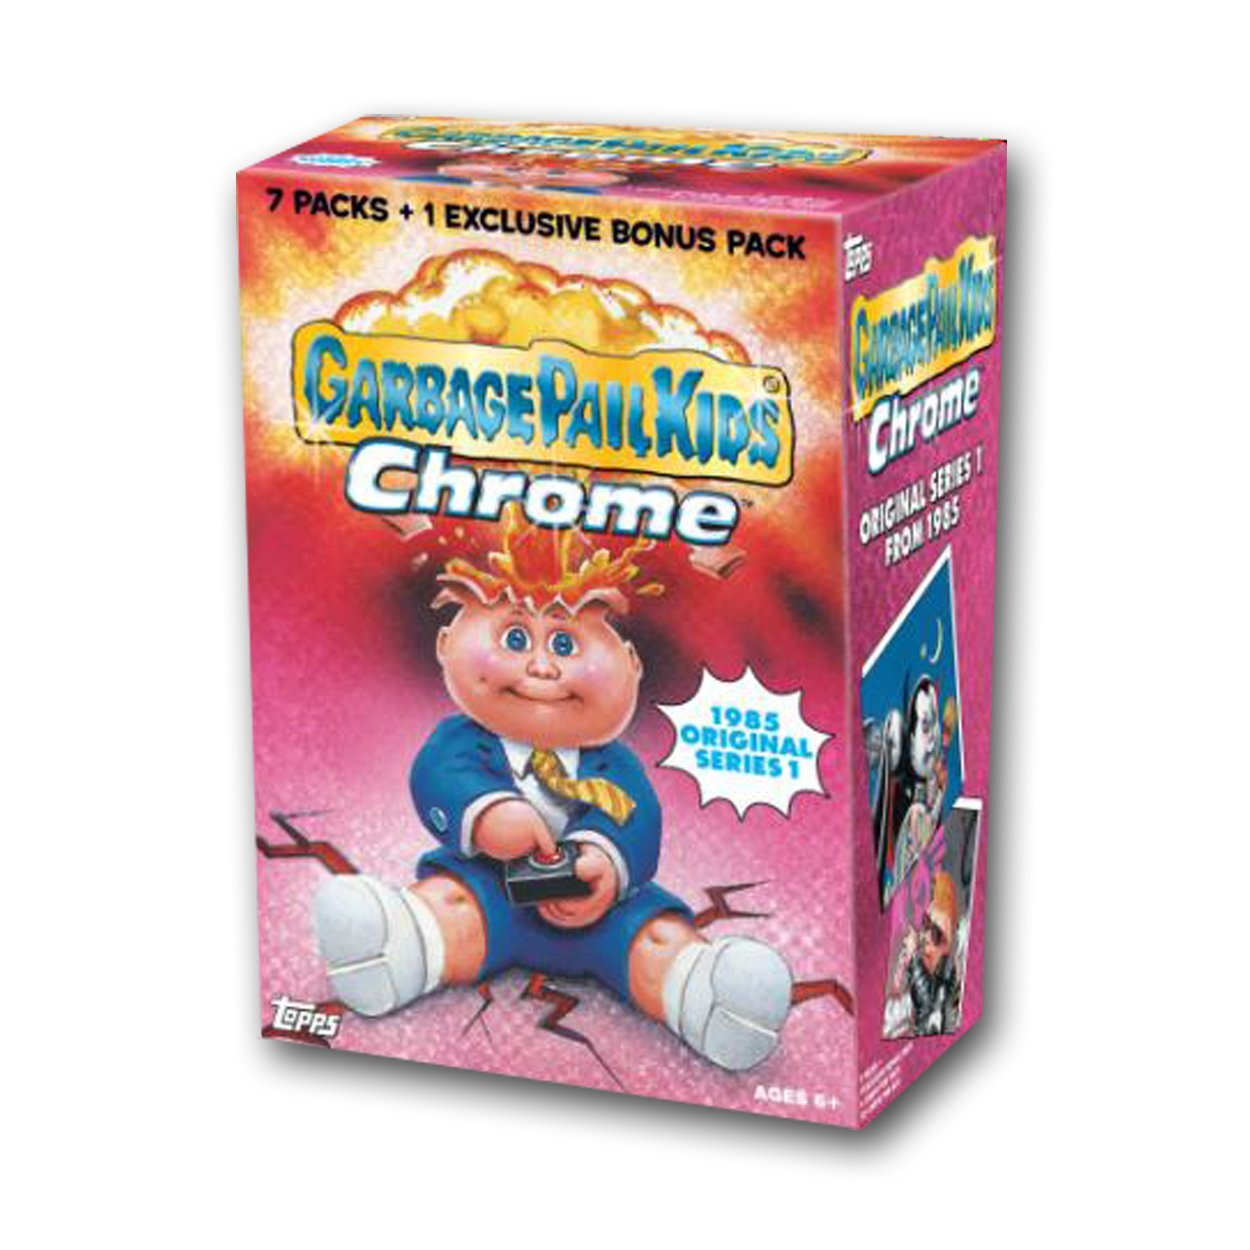 Garbage Pail Kids 2013 Chrome Value Box, 7 Packs and 1 Exclusive X-Factor Pack!